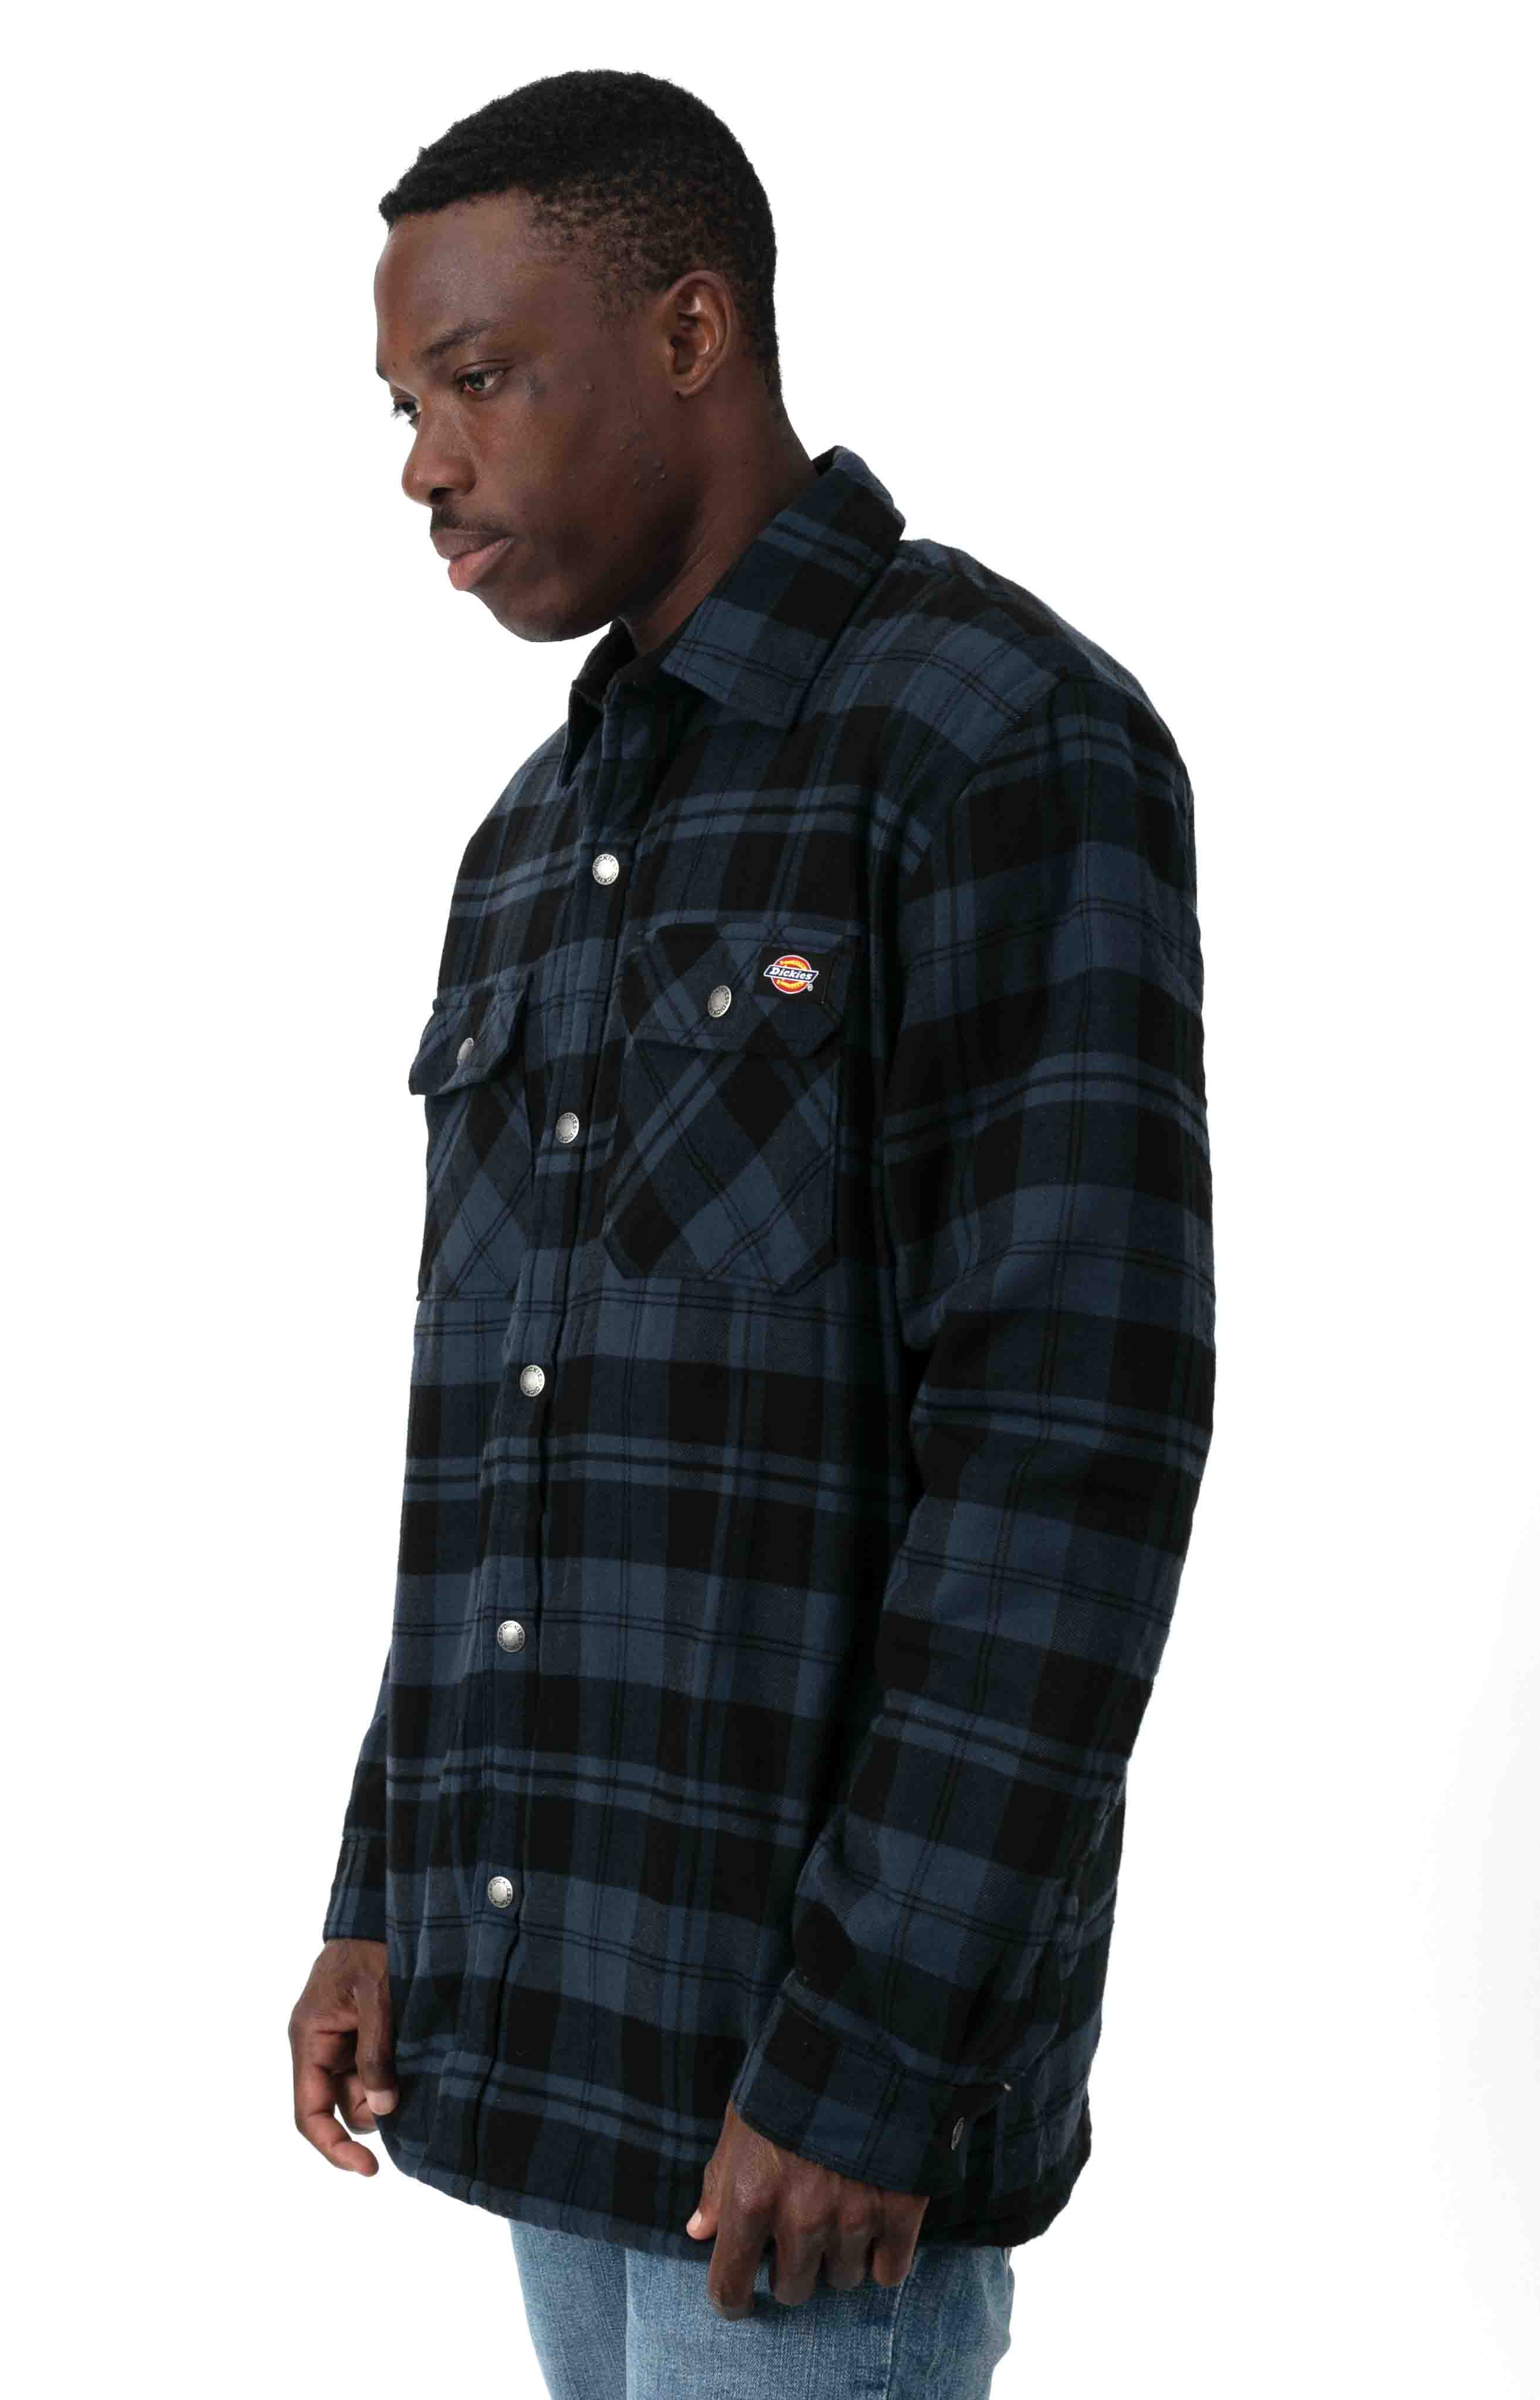 (TJ210OP1) Sherpa Lined Flannel Shirt Jacket with Hydroshield - Ink Navy Plaid  2